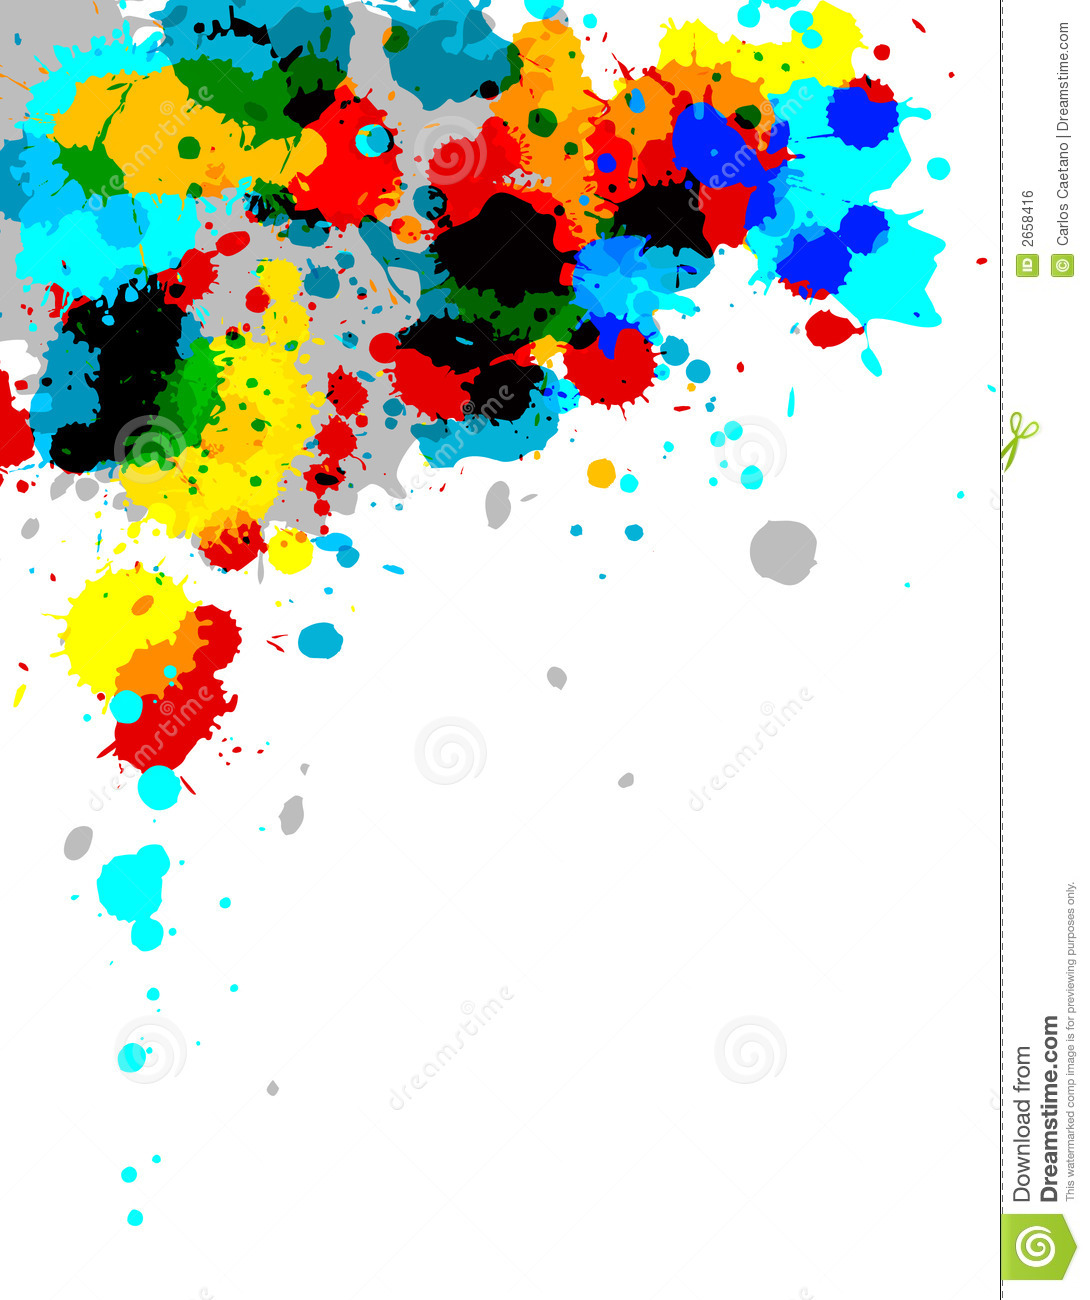 photoshop how to draw color splash